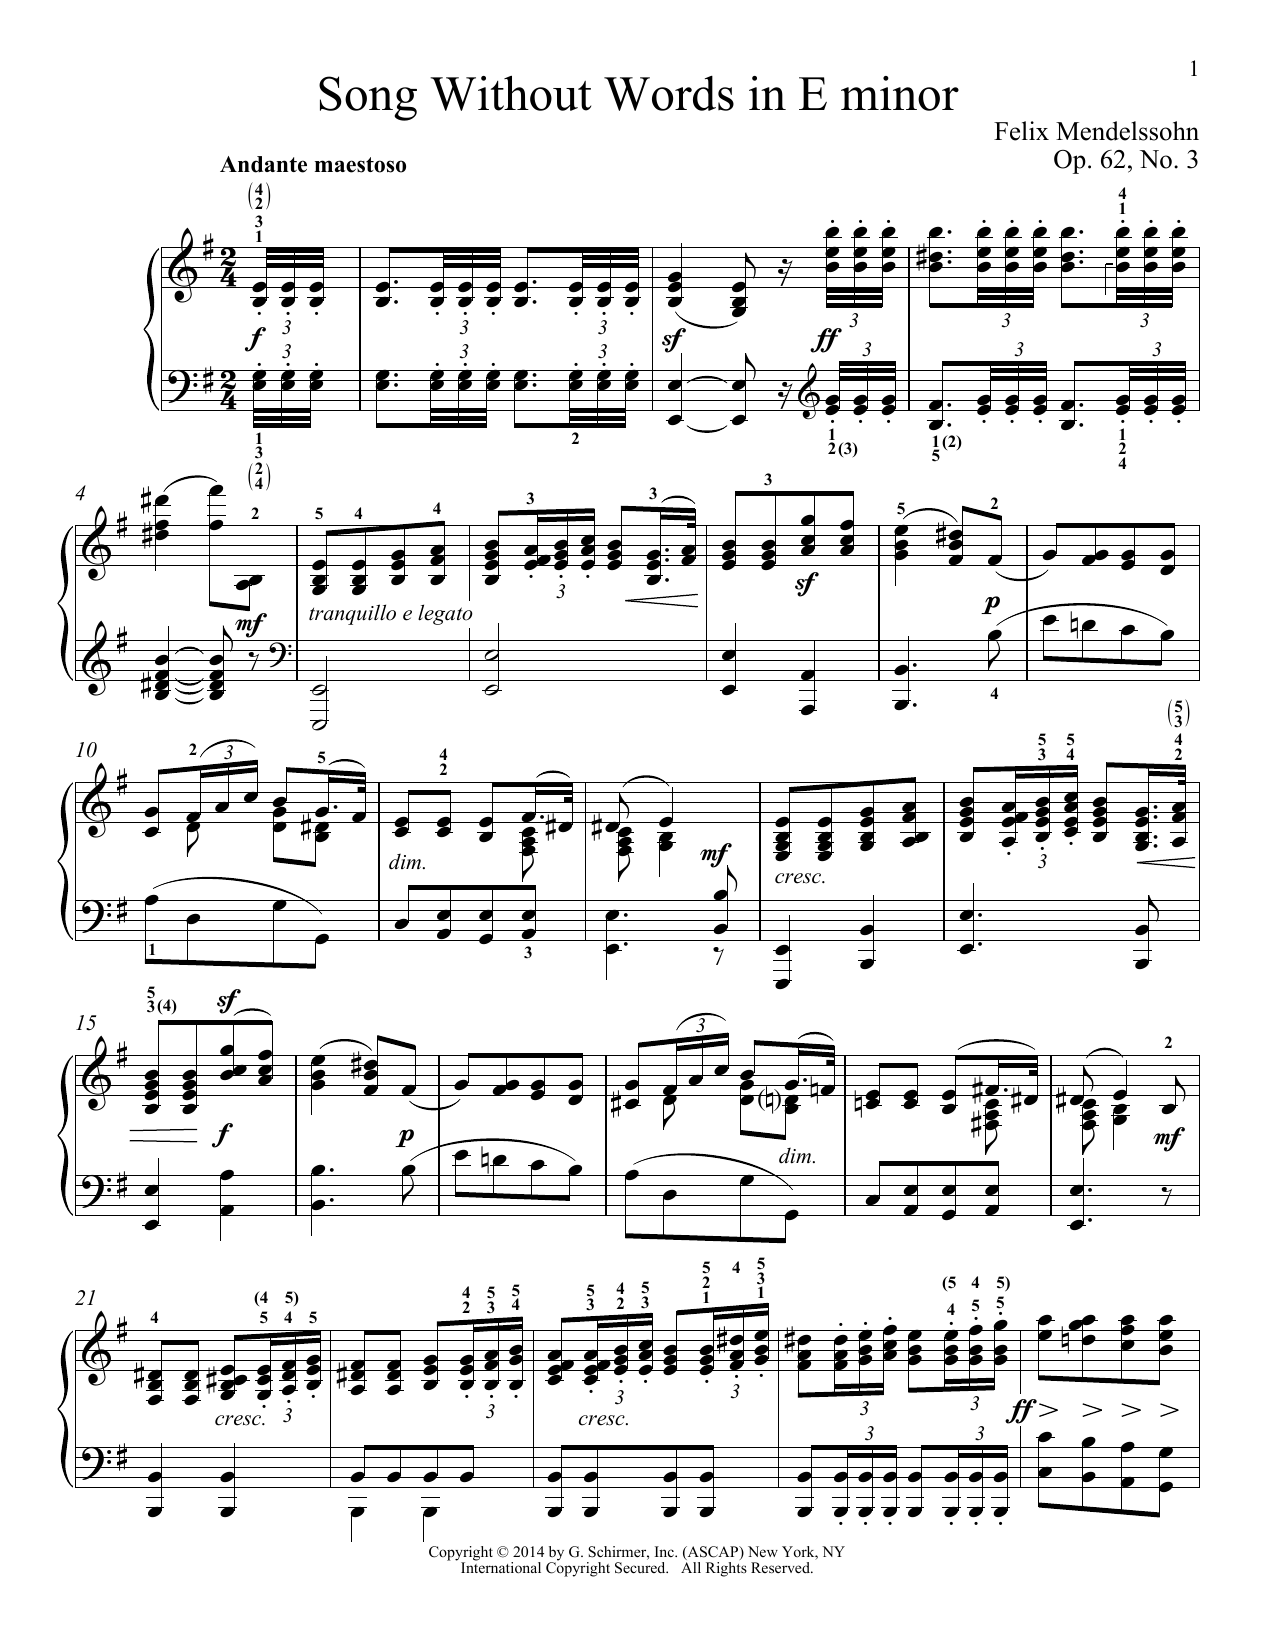 Immanuela Gruenberg Song Without Words In E Minor, Op. 52, No. 3 sheet music notes and chords. Download Printable PDF.